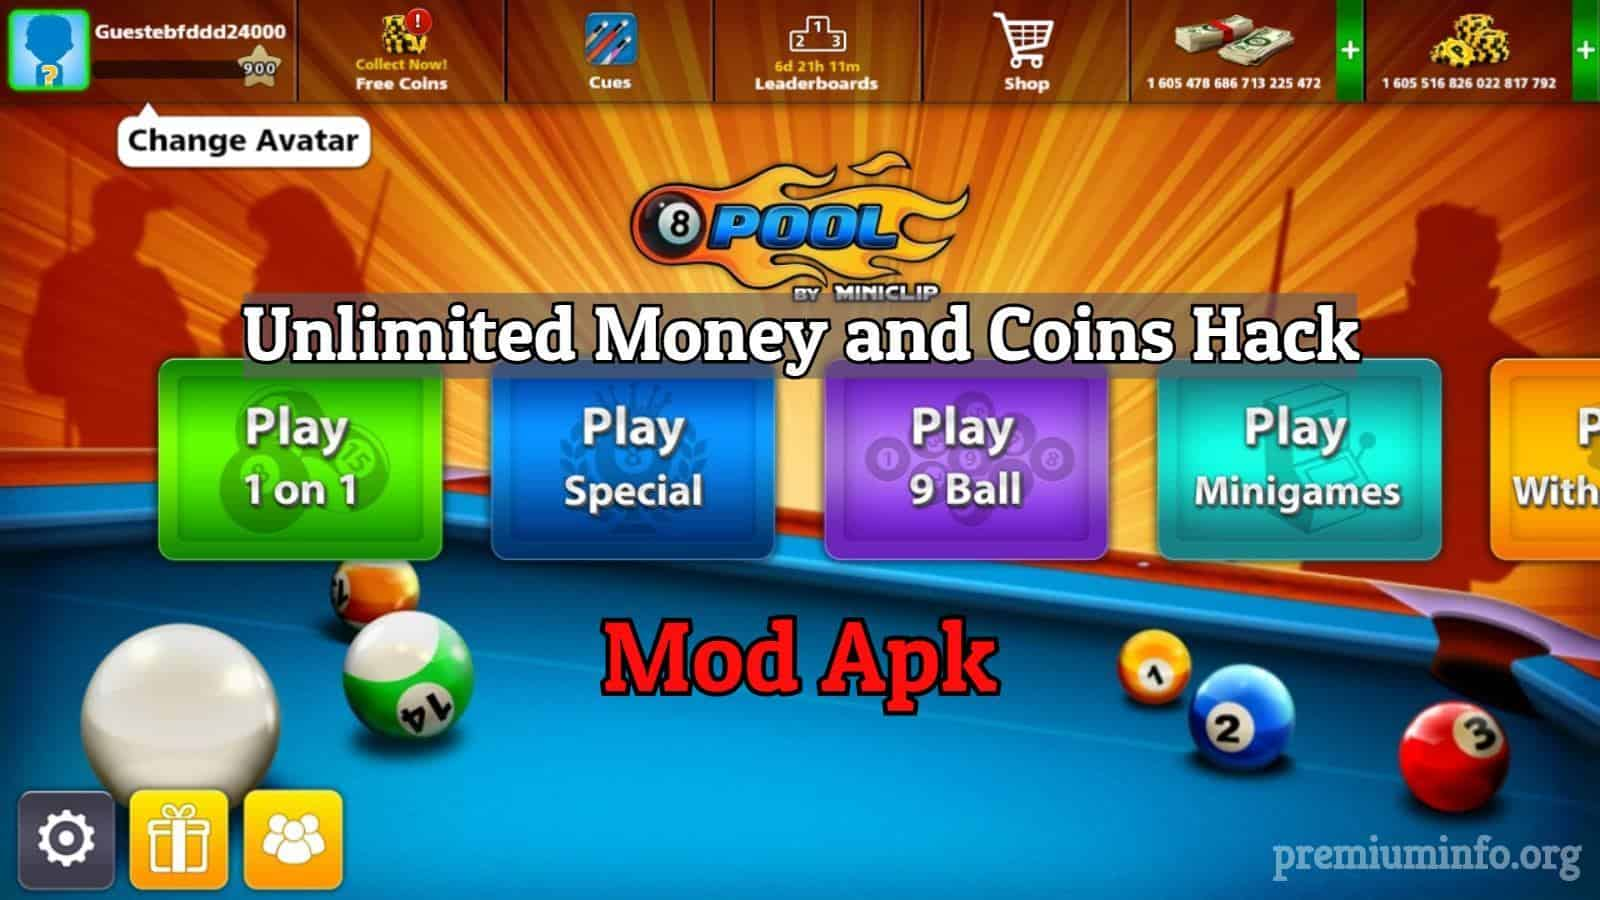 8 Ball Pool Mod Apk Download | Unlimited Money Trick | Coin